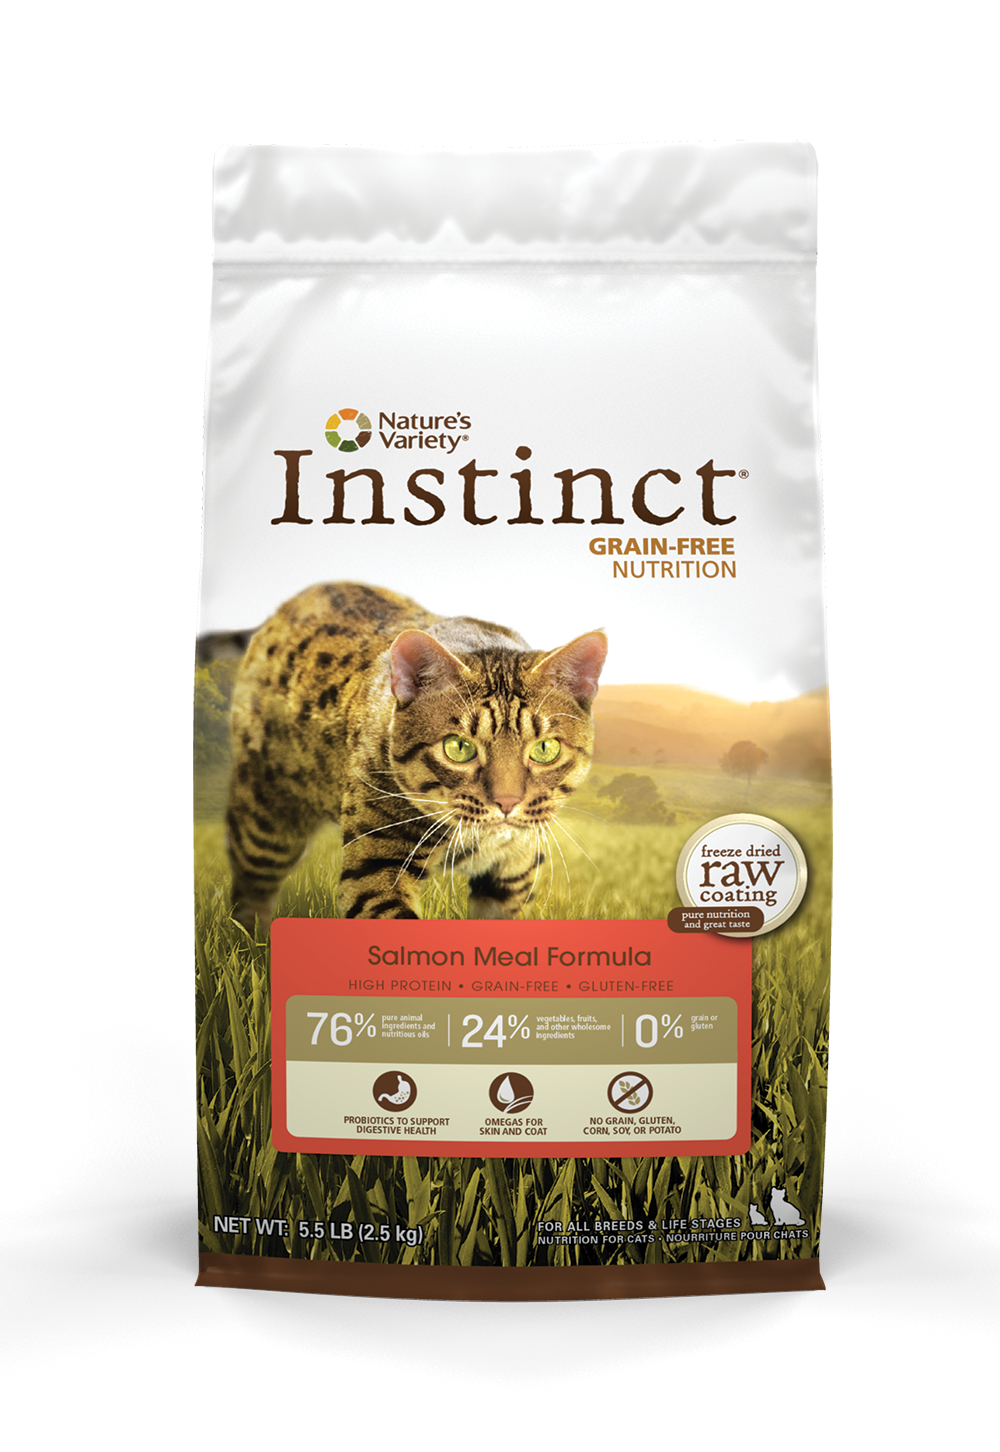 Instinct Salmon Dry Kibble Pet Food Provide Natural And Healthy Foods For Your Cat Freedom From Allergies He Cat Food Reviews Dry Cat Food Instinct Cat Food